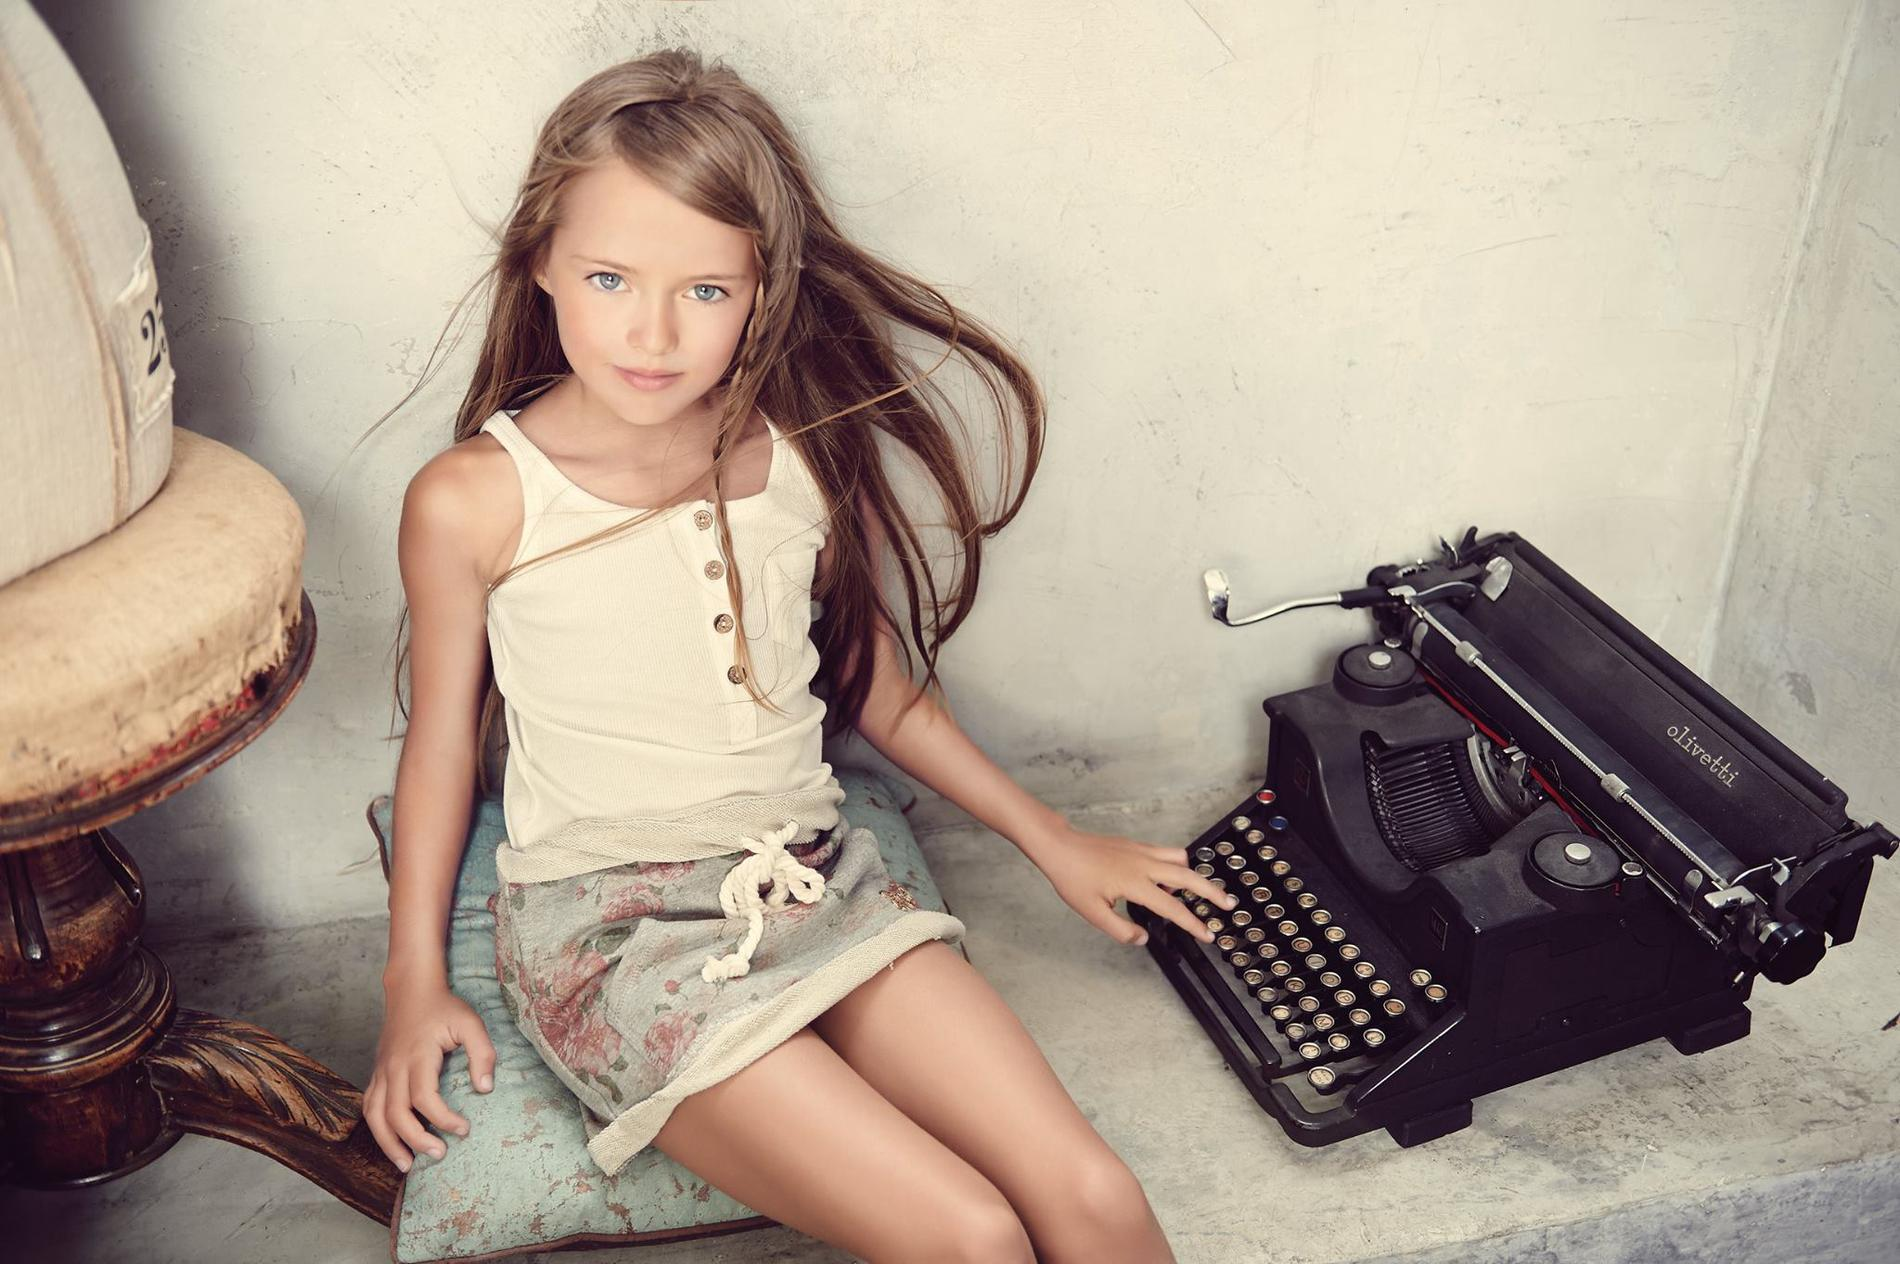 Kristina Pimenova La Nia Ms Bonita Del Mundo Interiors Inside Ideas Interiors design about Everything [magnanprojects.com]